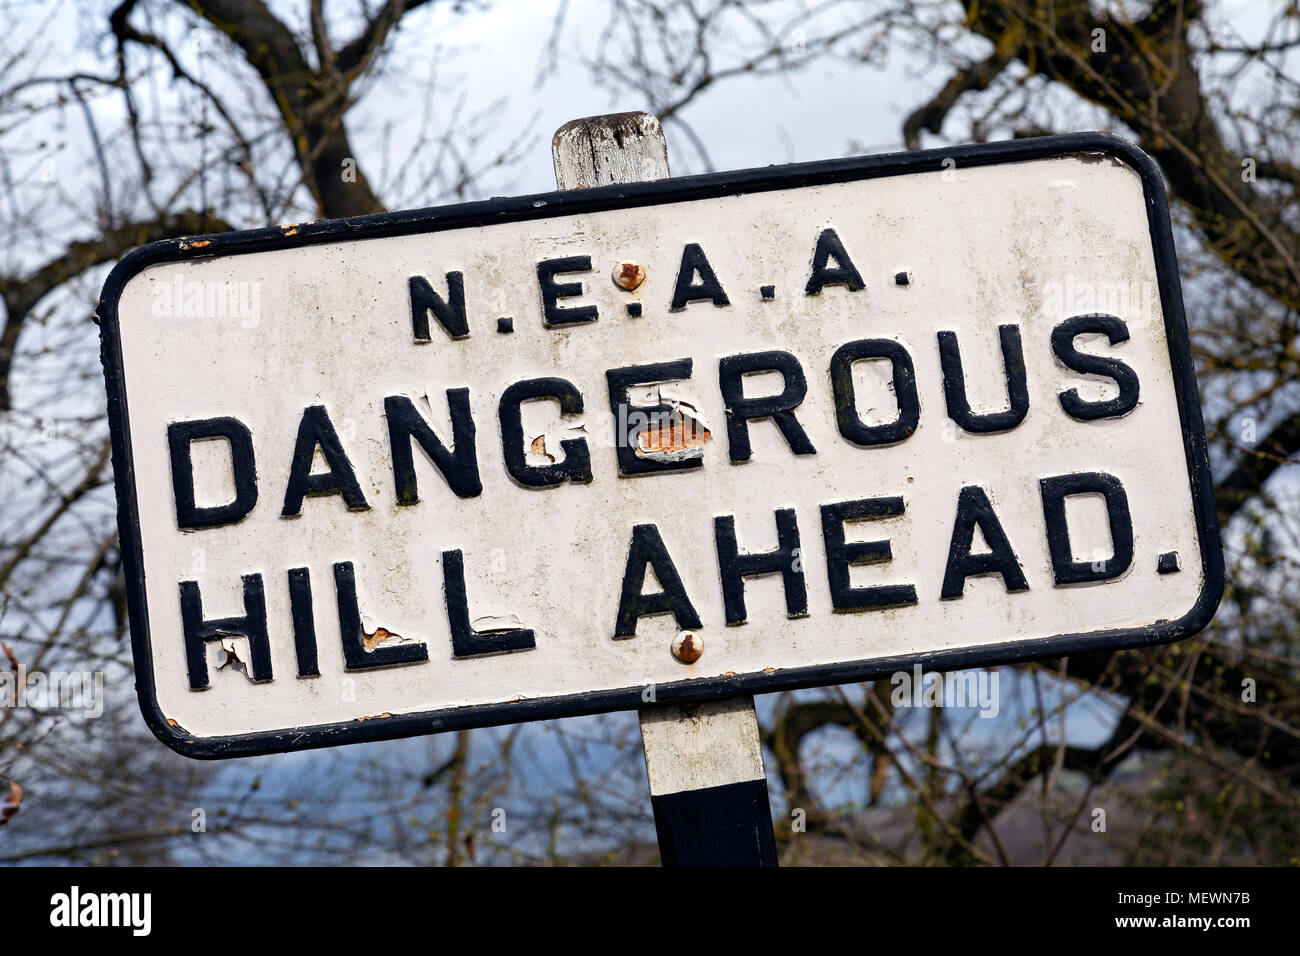 Old road sign in the northeast of England. Dangerous Hill Ahead. - Stock Image